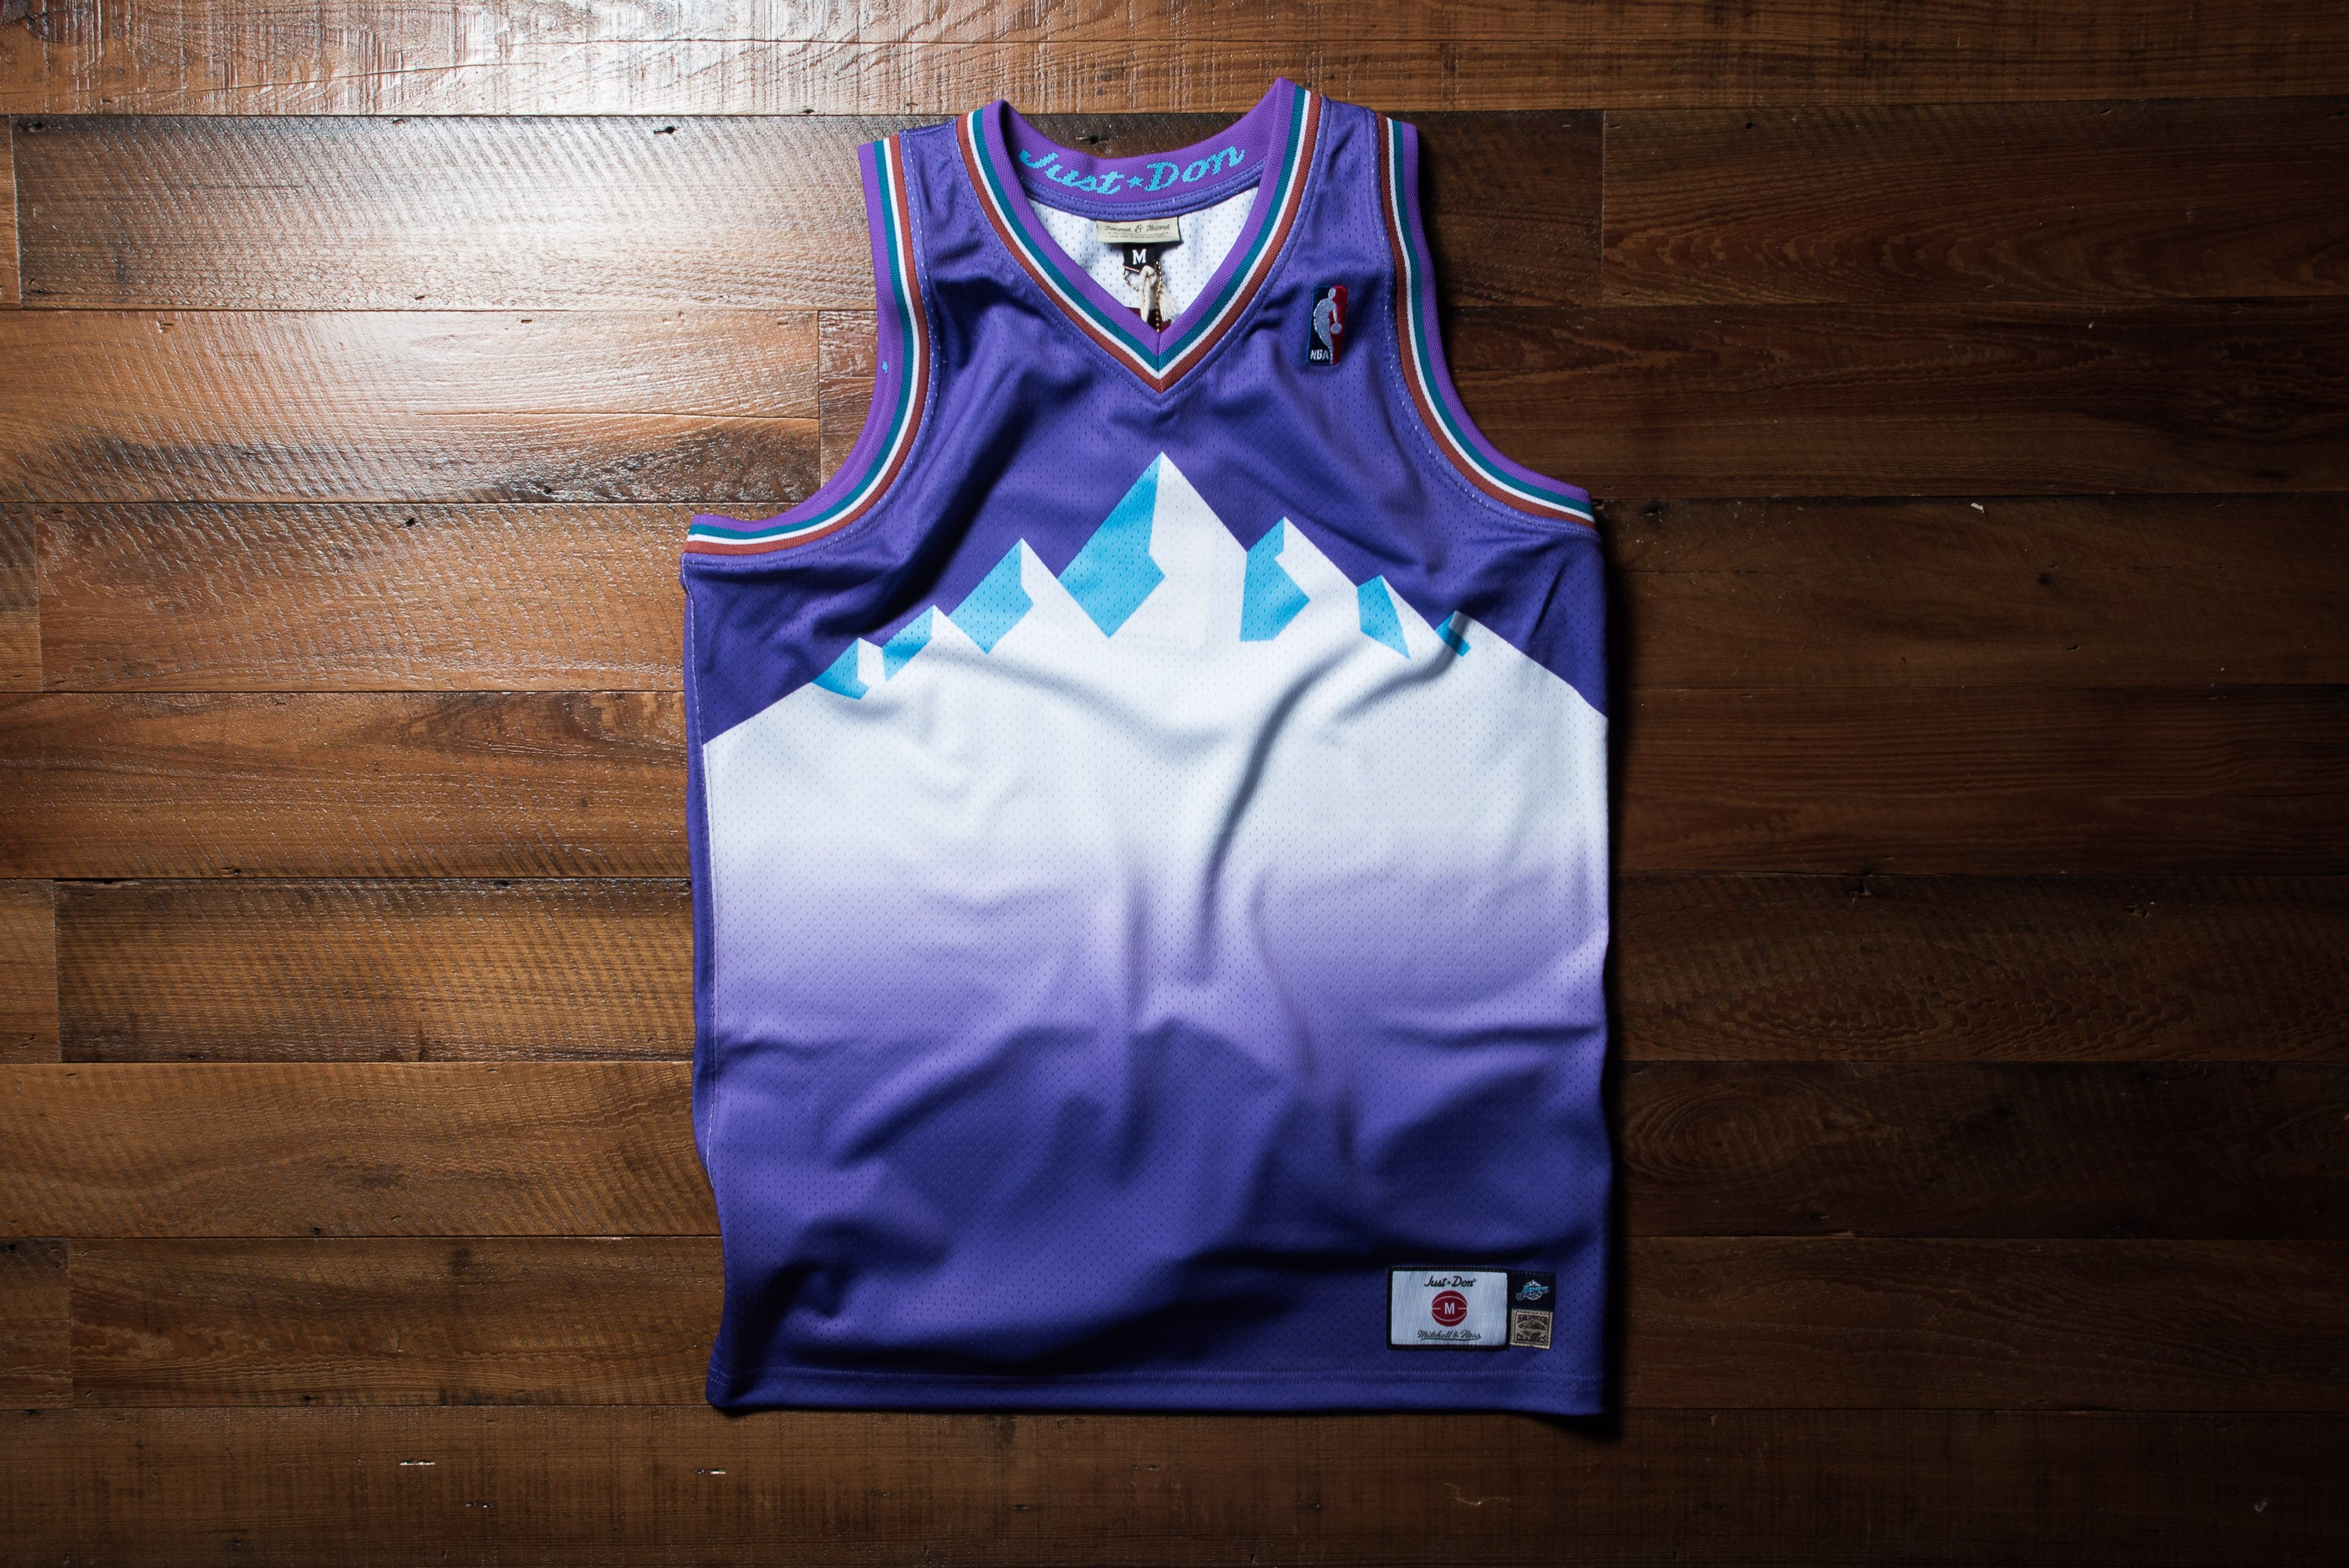 huge discount 9009a 4e4ab Just Don No Name jersey - Utah Jazz